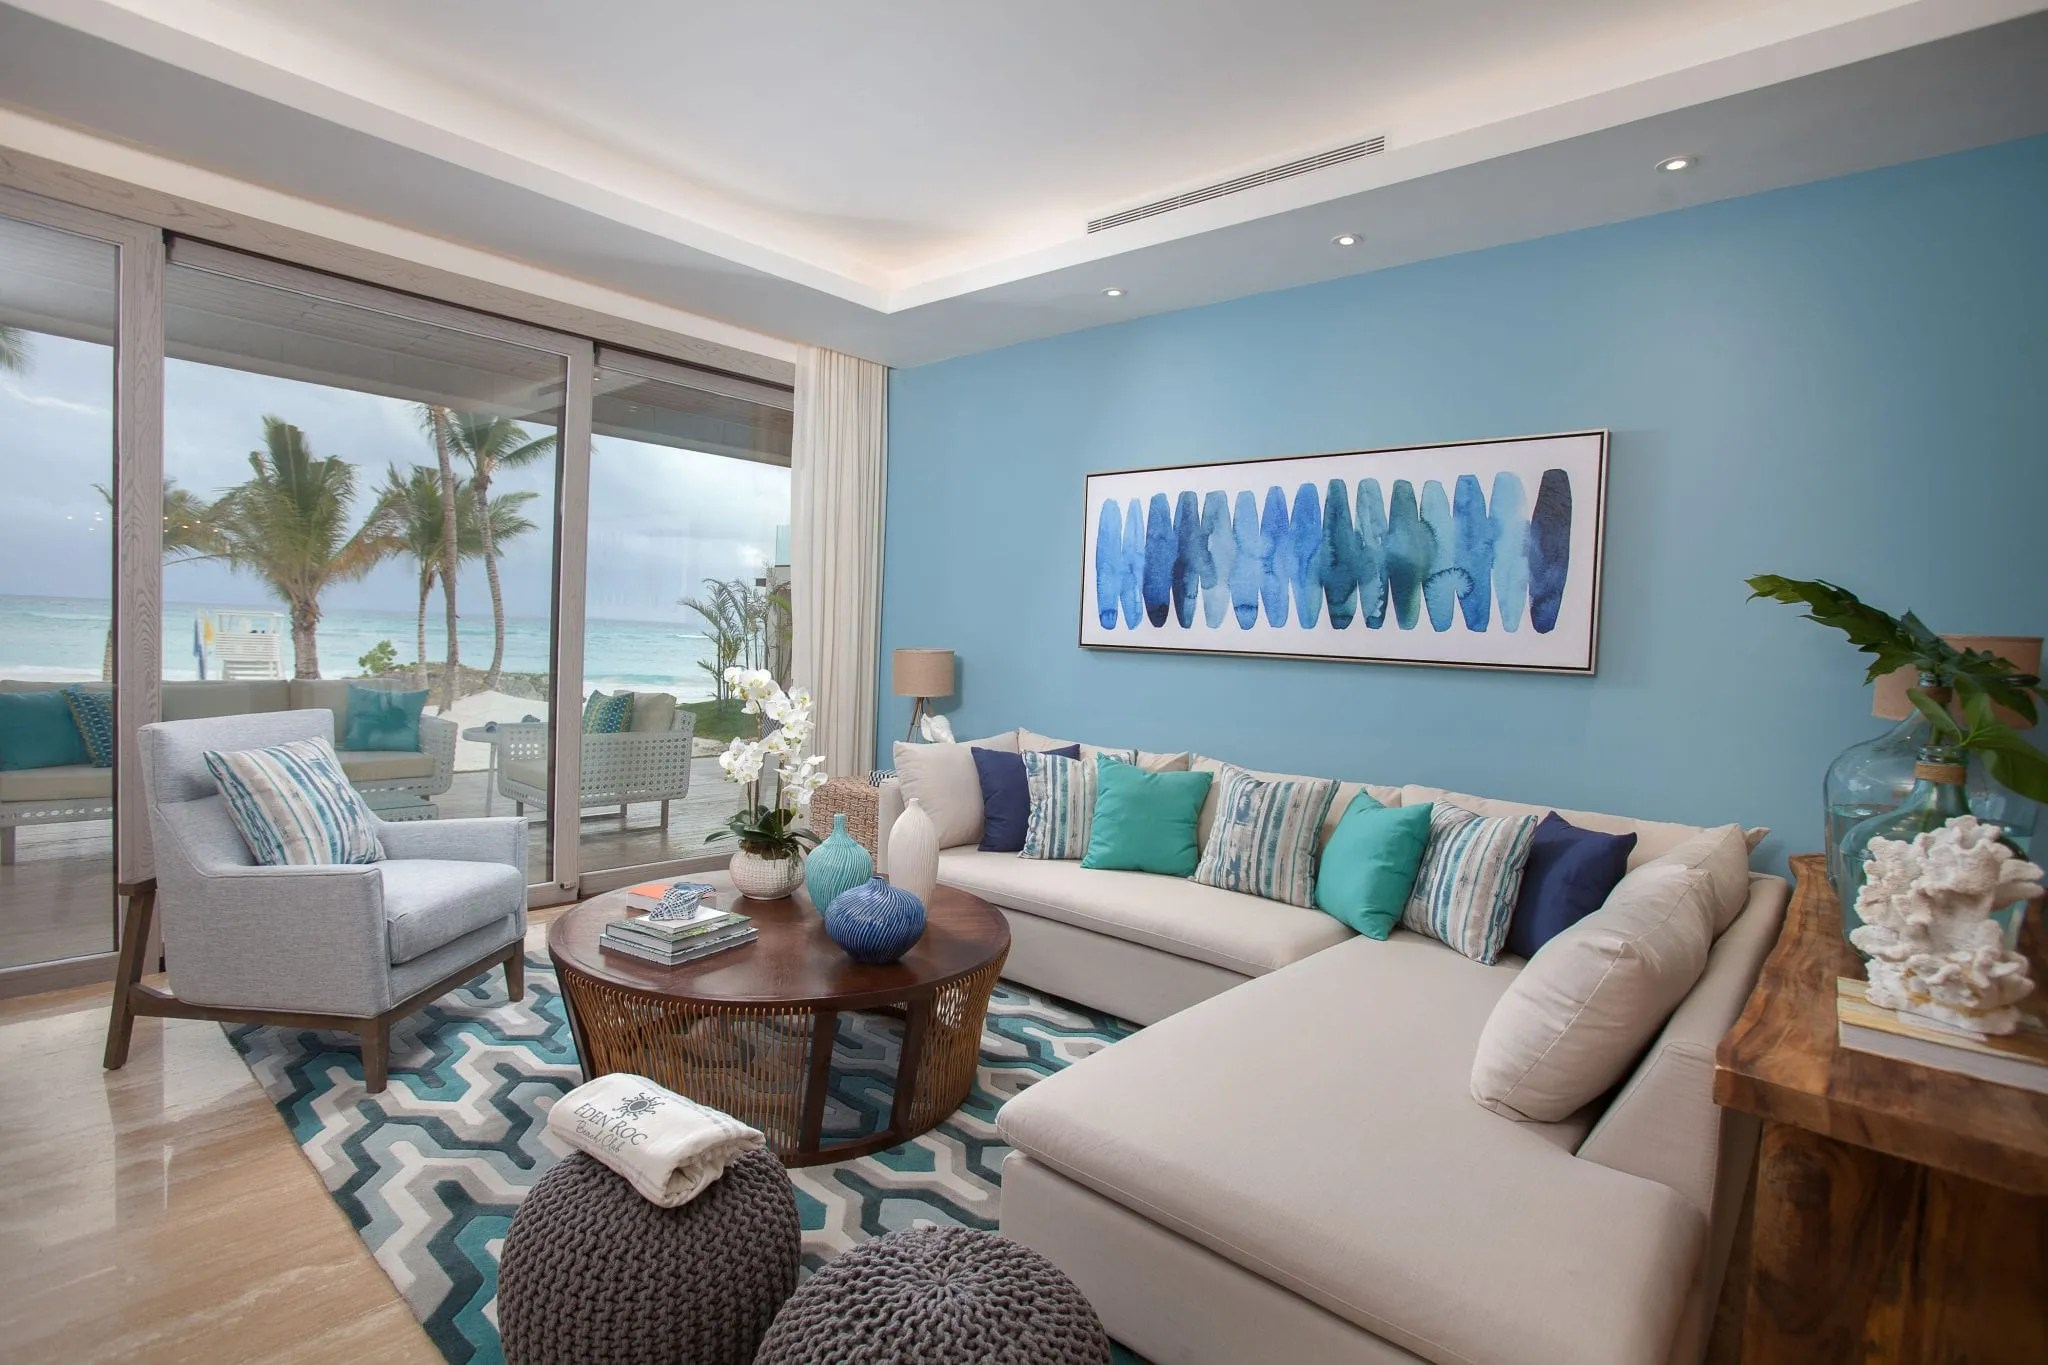 Muebles Eden En Las Palmas - Eden Roc At Cap Cana Completes Beachfront Suites Dunamar Cap Cana[mjhdah]https://i2.wp.com/www.dunamarcapcana.com/wp-content/uploads/2017/03/Beachfront-Suite_Secondary-Room_4345.jpg?ssl=1